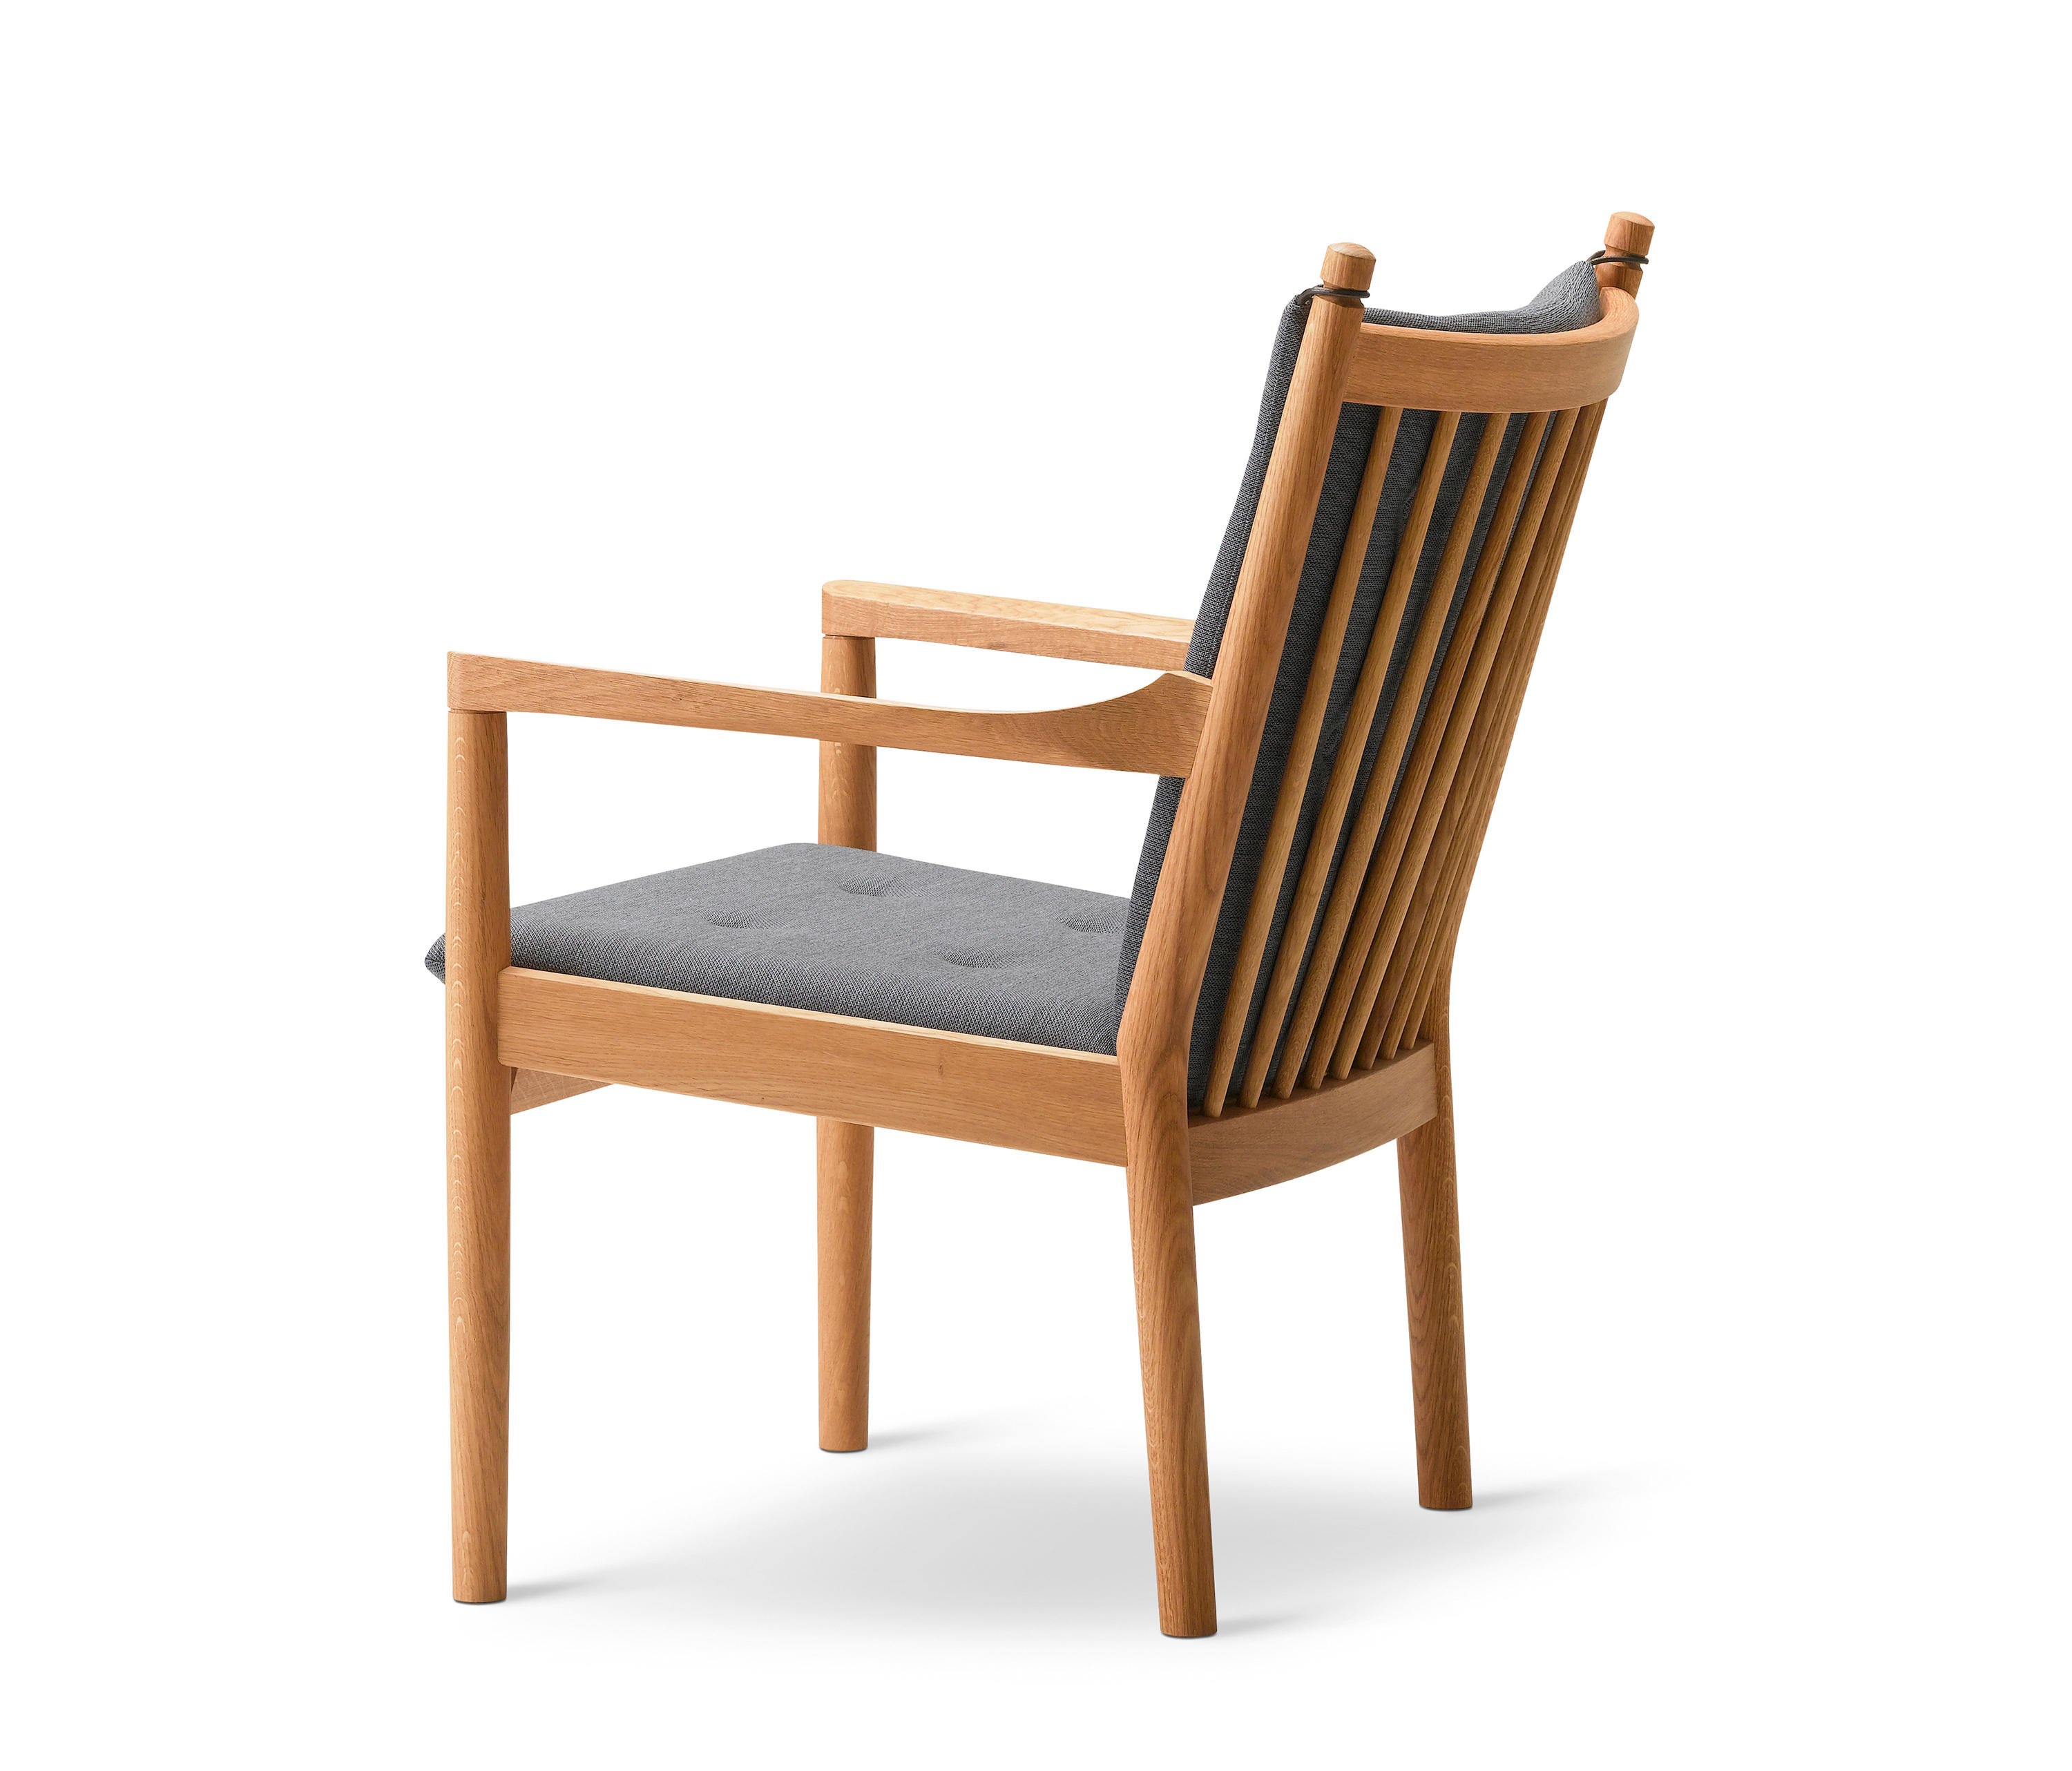 Gentil Wegner 1788 Chair By Fredericia Furniture | Armchairs ...